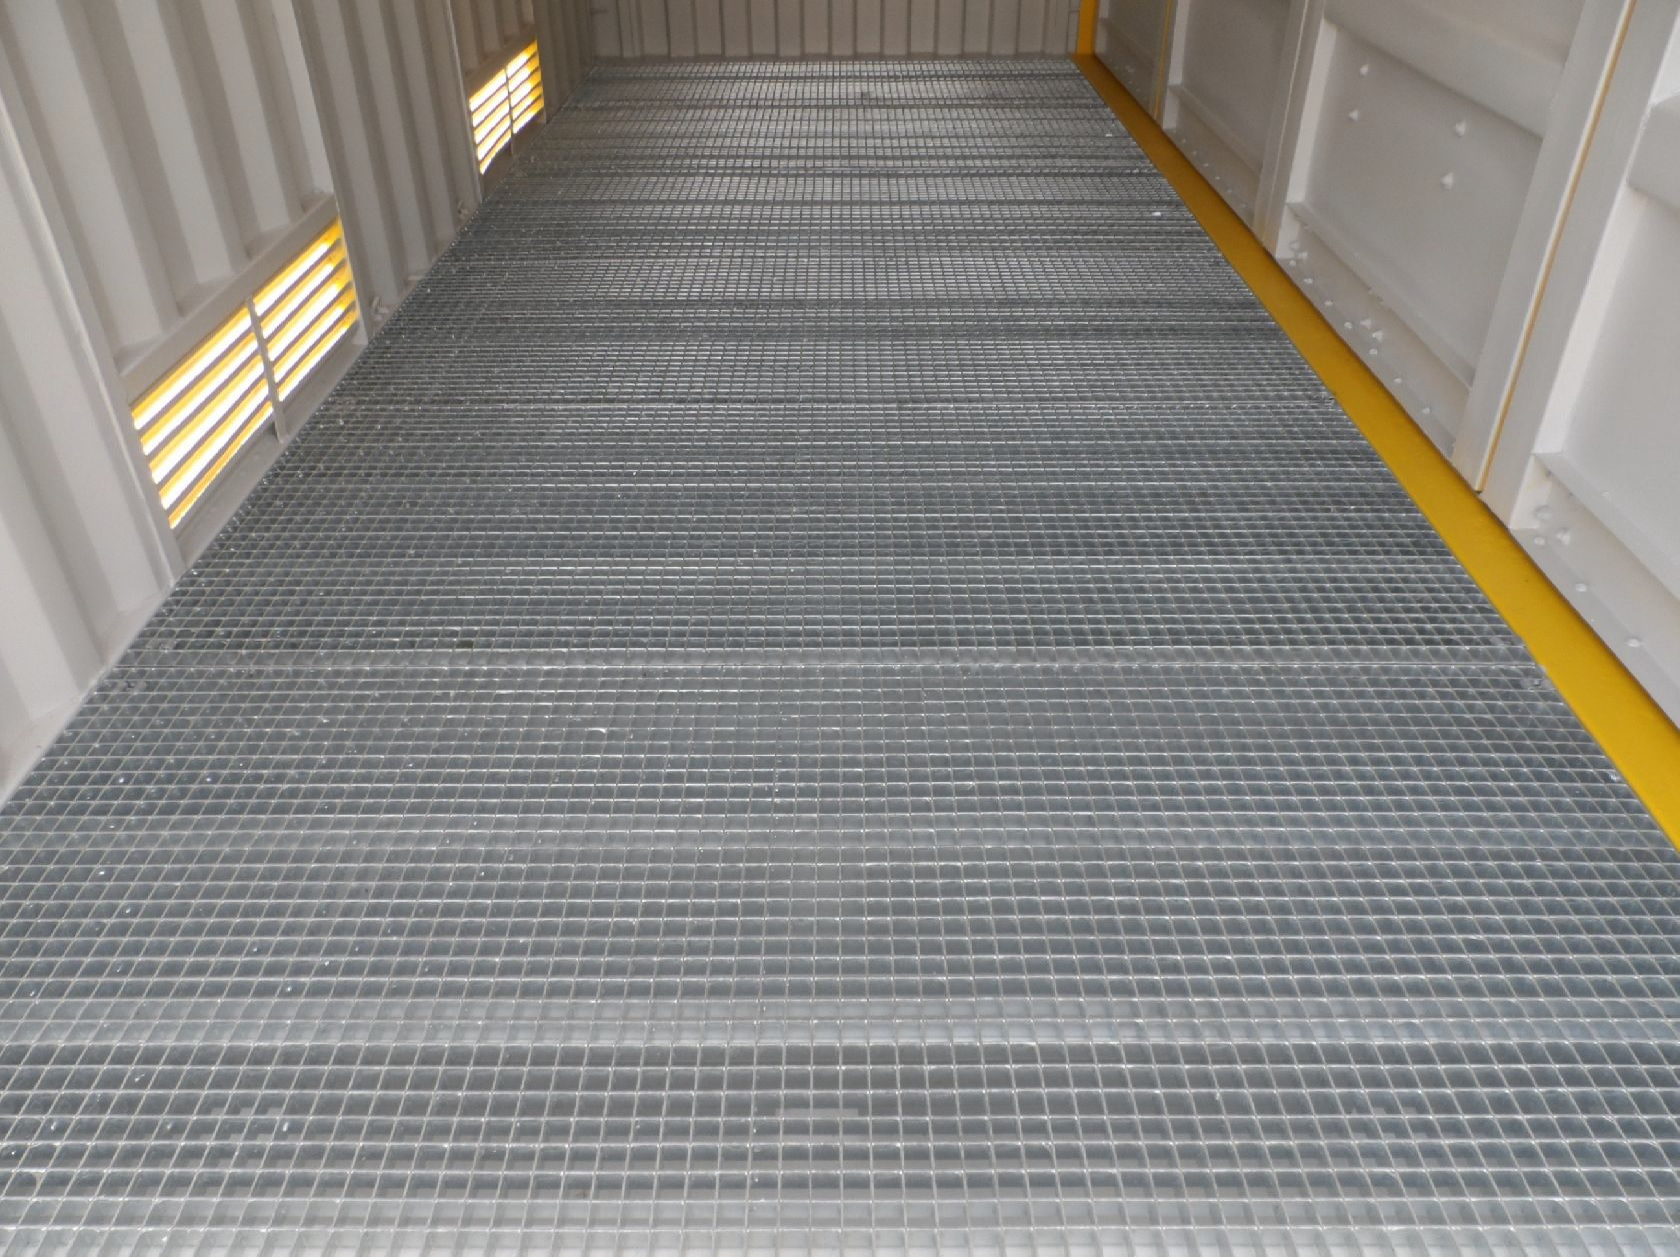 Steel Grid Floor.jpg